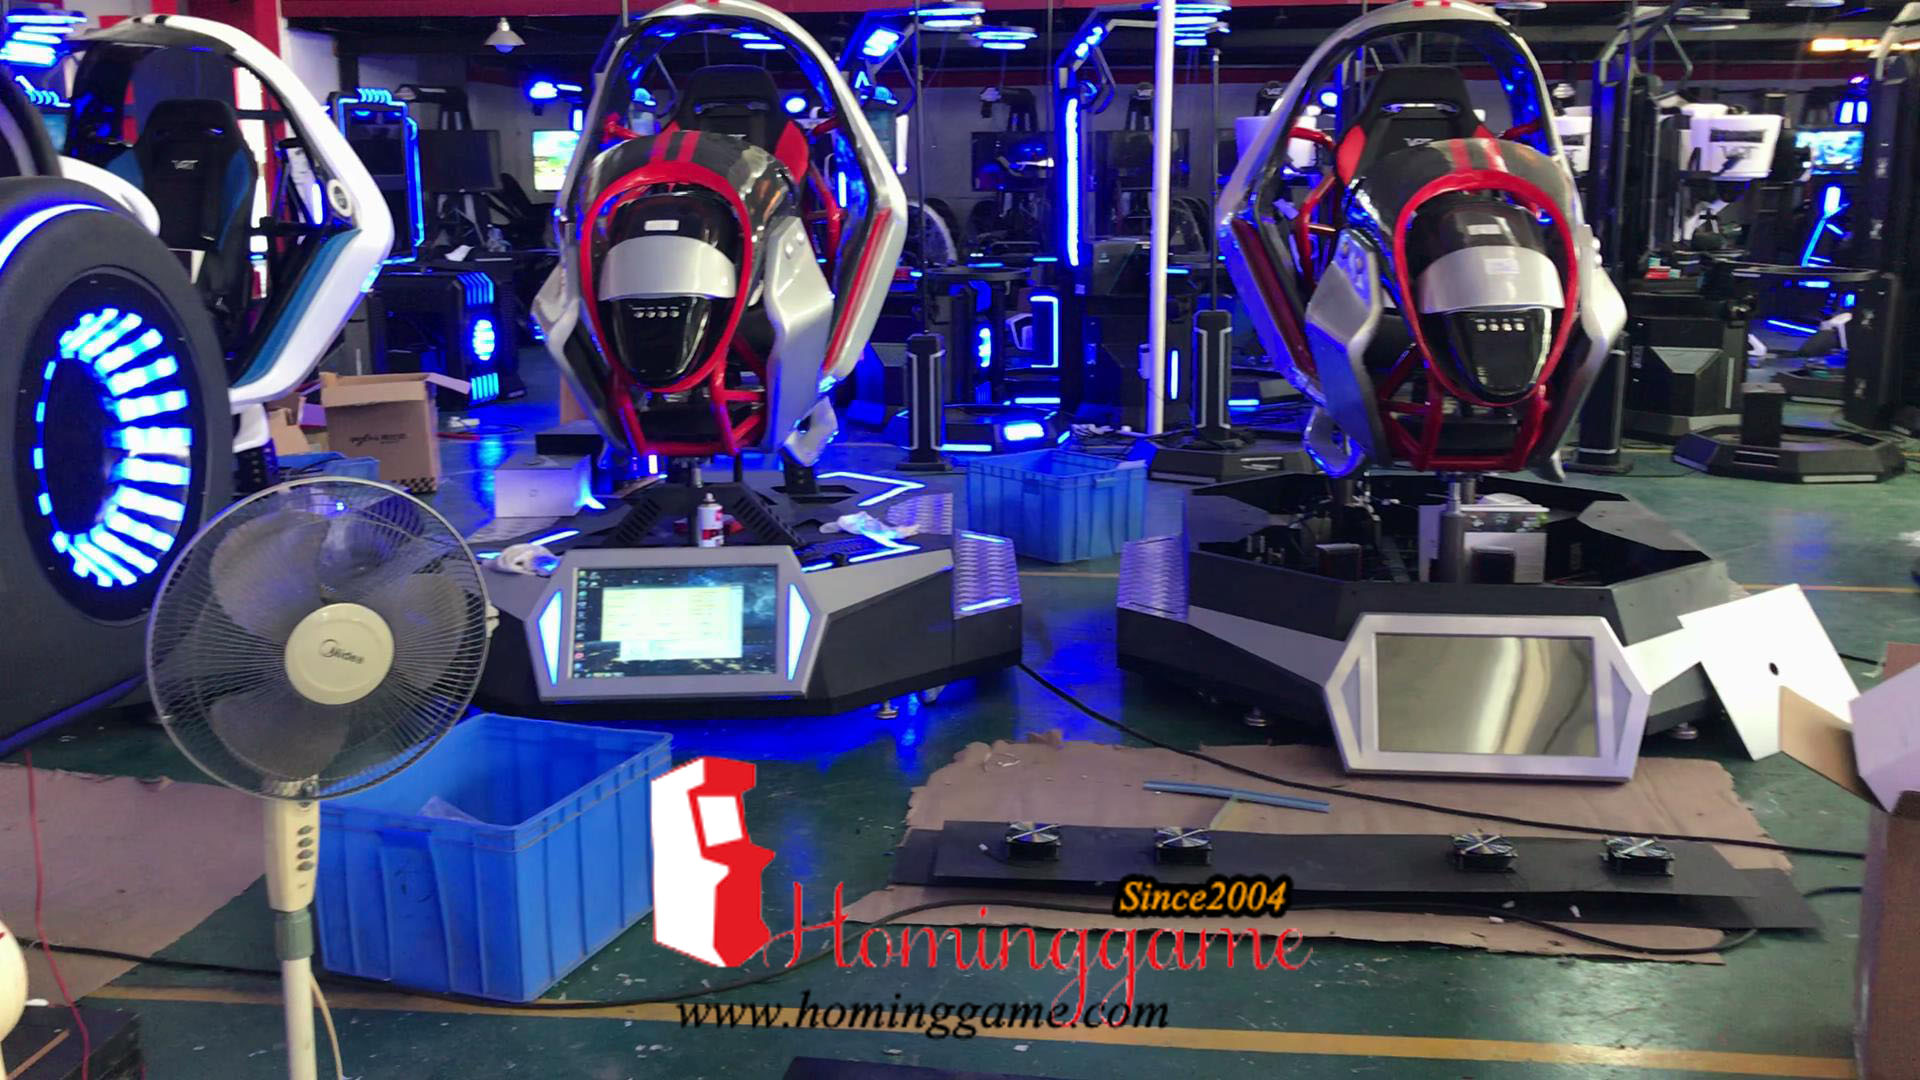 2018 9D VR Egg Relaity Game Machine,9D VR Cinema Egg Game,9D VR game,VR Game,9D VR,VR game machine,9D VR cinema,9D VR theater,9D,9D Machine,VR Egg,Single VR egg,Double 9D VR egg, 3 Player 9D VR egg,9D VR Bike,9D VR 6 seats Theater,6 seats VR theater,9D Cinema,9D racing Car Game Machine,9D VR gun shooting game machine,9D VR airplane,9D VR simulator game machine,Game Machine,Arcade Game Machine,Coin Operated Game Machine,Amusement park game machine,Simulator game machine,Indoor game machine,Family Entertainment,Entertainment game machine